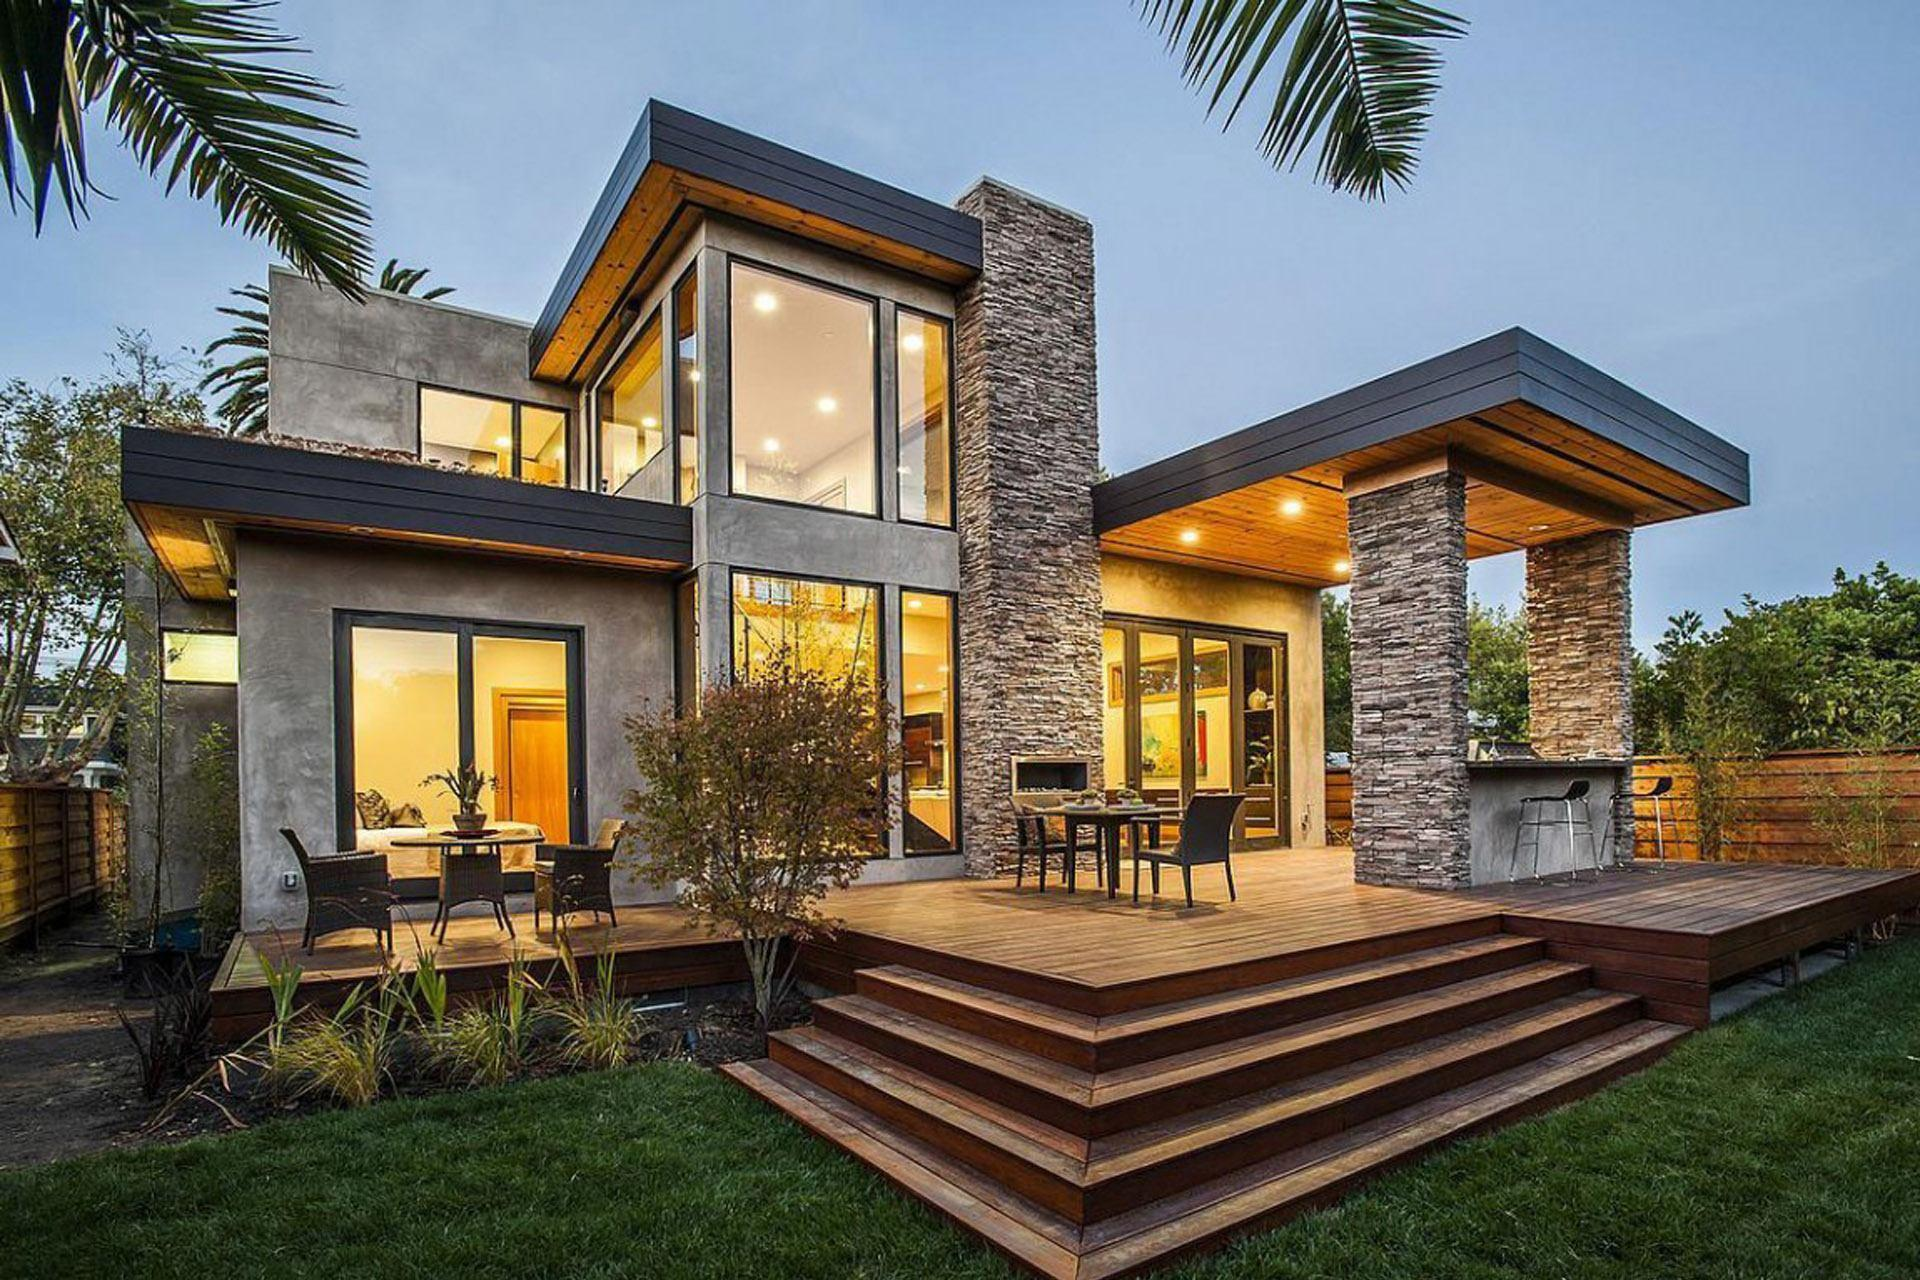 projects of houses - 1150×764